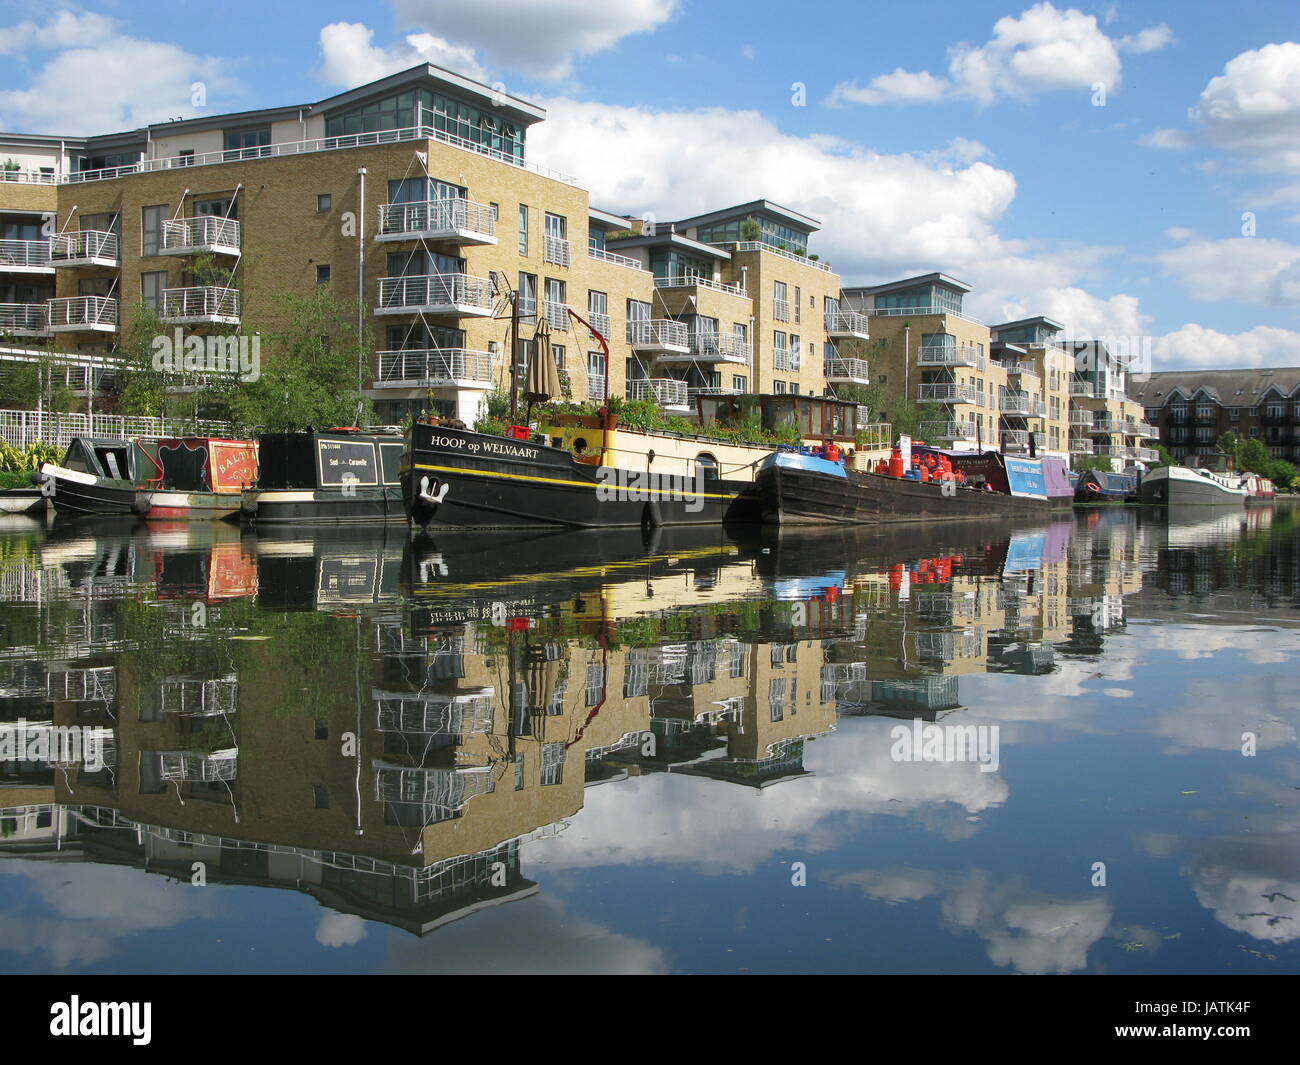 London, United Kingdom - June 1, 2017: Boats in Brentford Marina, River Brent, Greater London, Brentford, England, - Stock Image